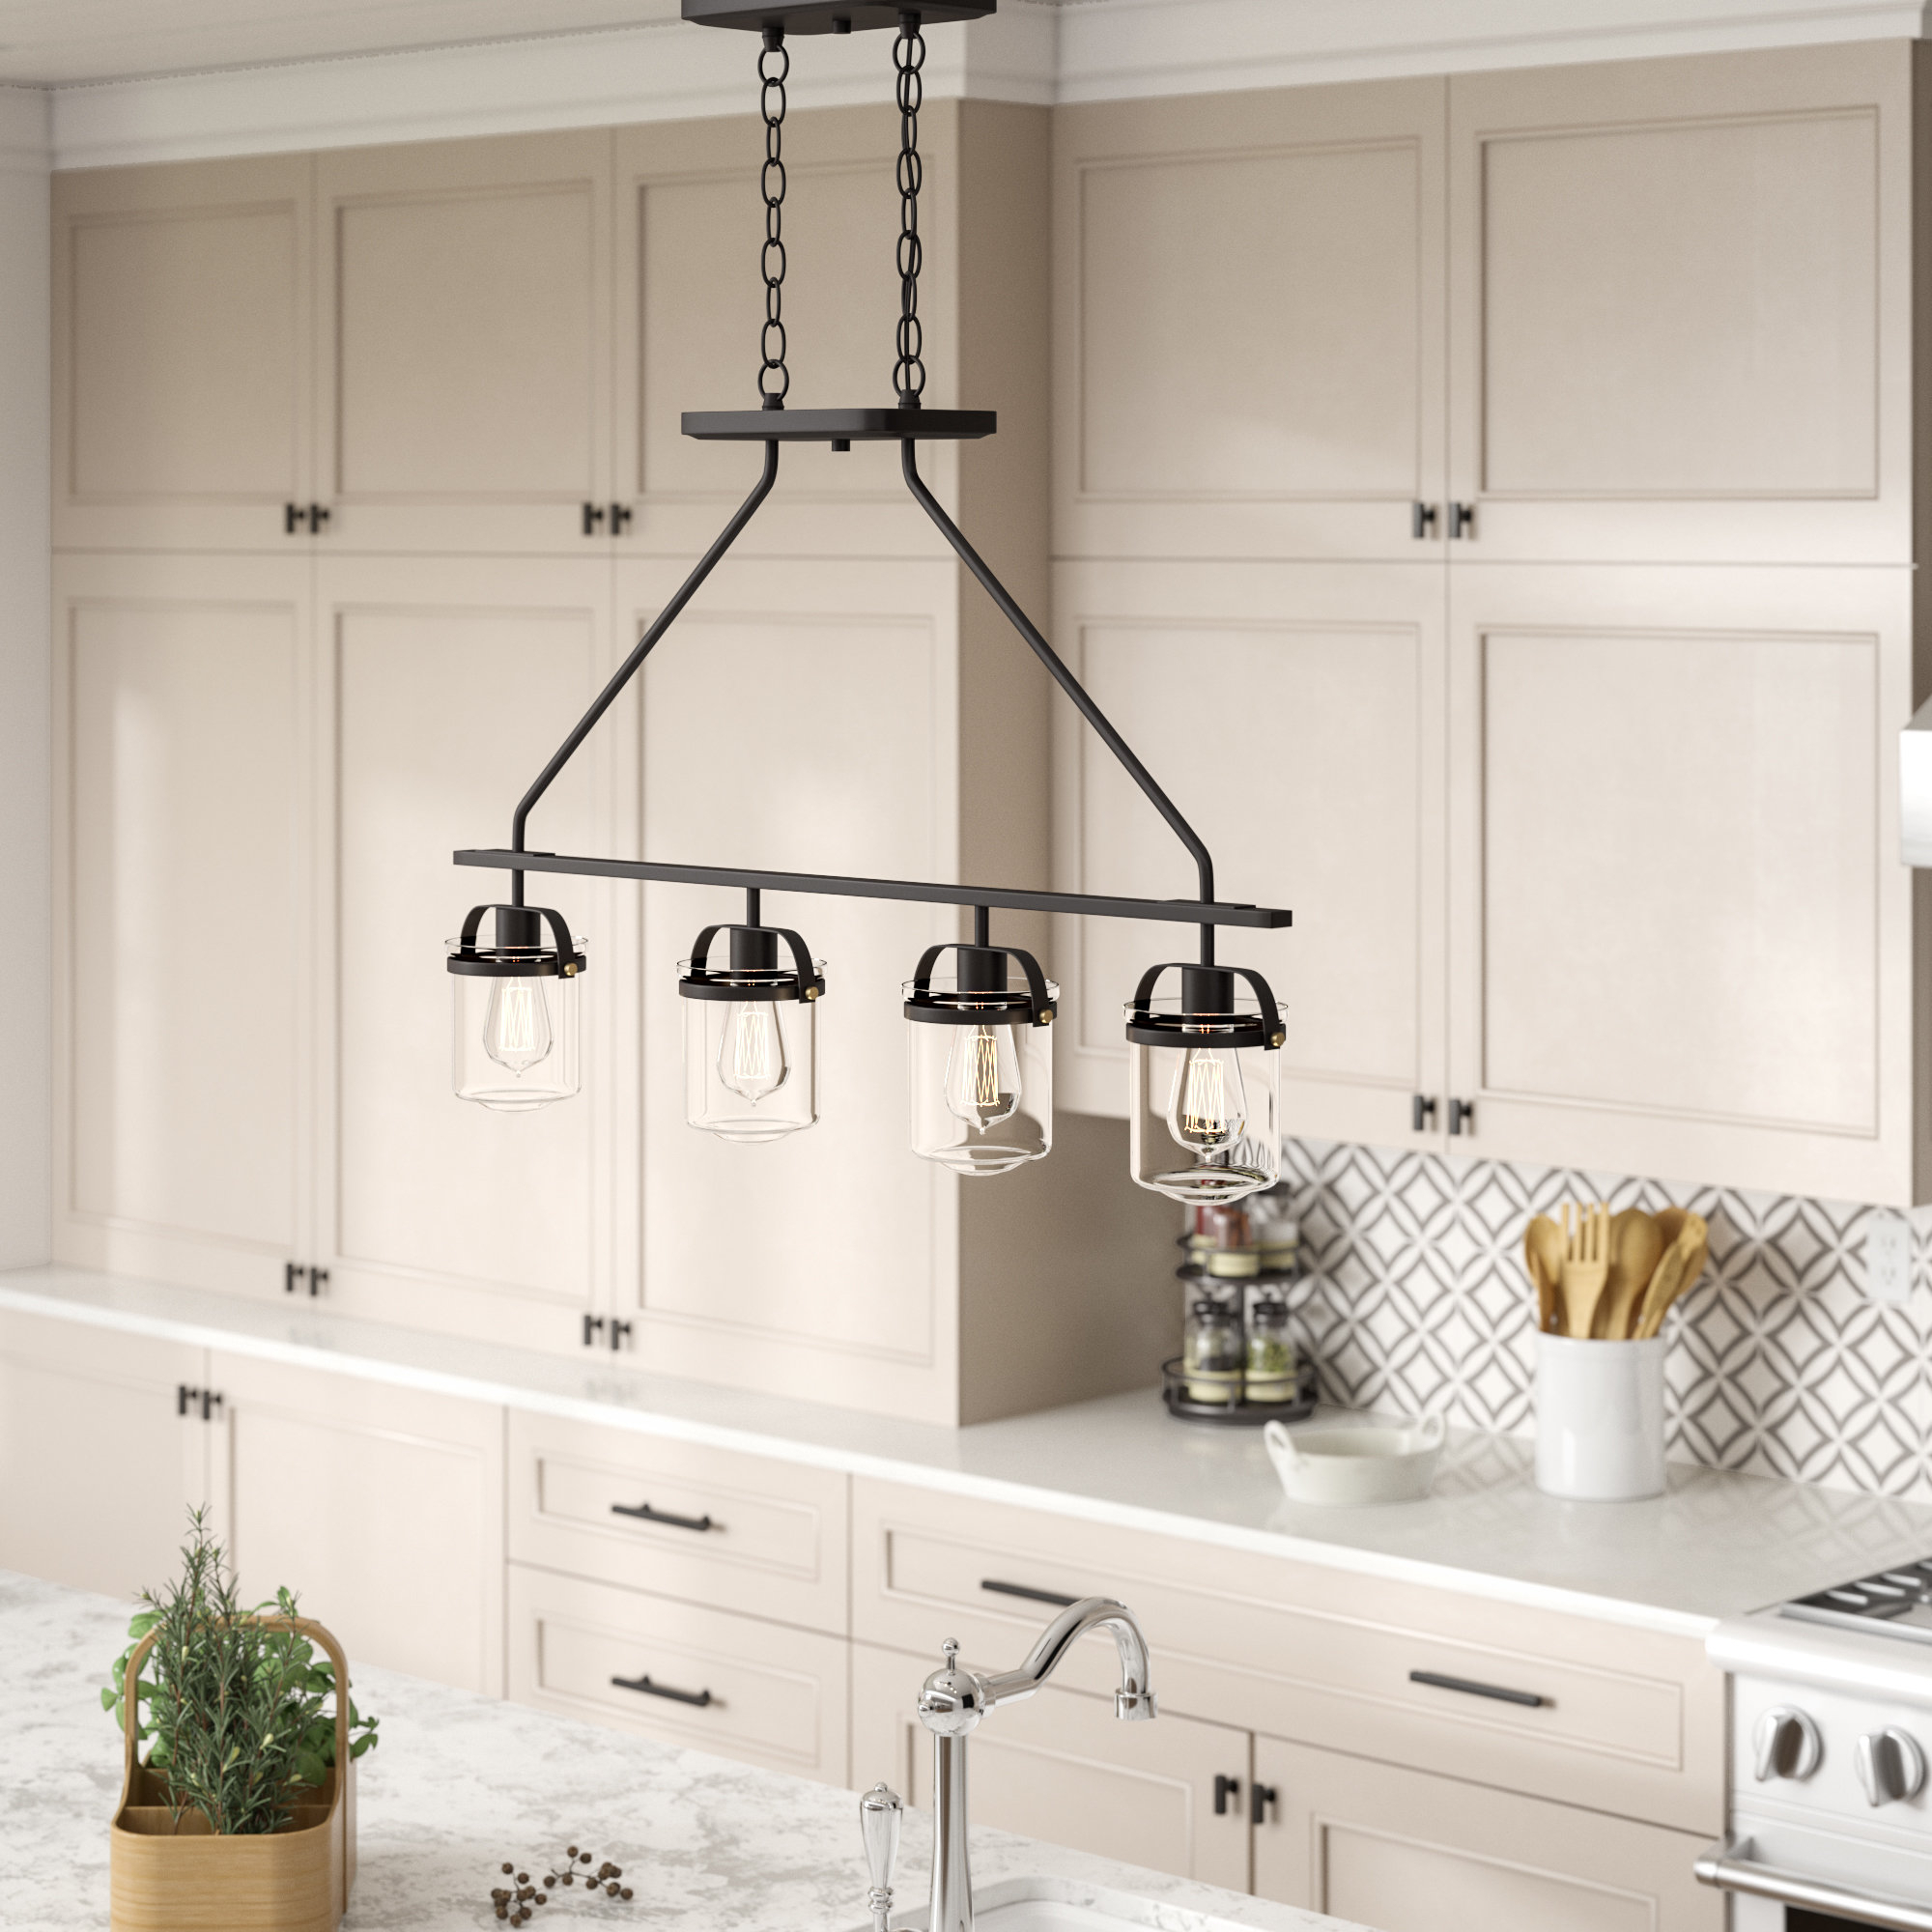 Laurel Foundry Modern Farmhouse Portland 4-Light Kitchen throughout Cinchring 4-Light Kitchen Island Linear Pendants (Image 22 of 30)